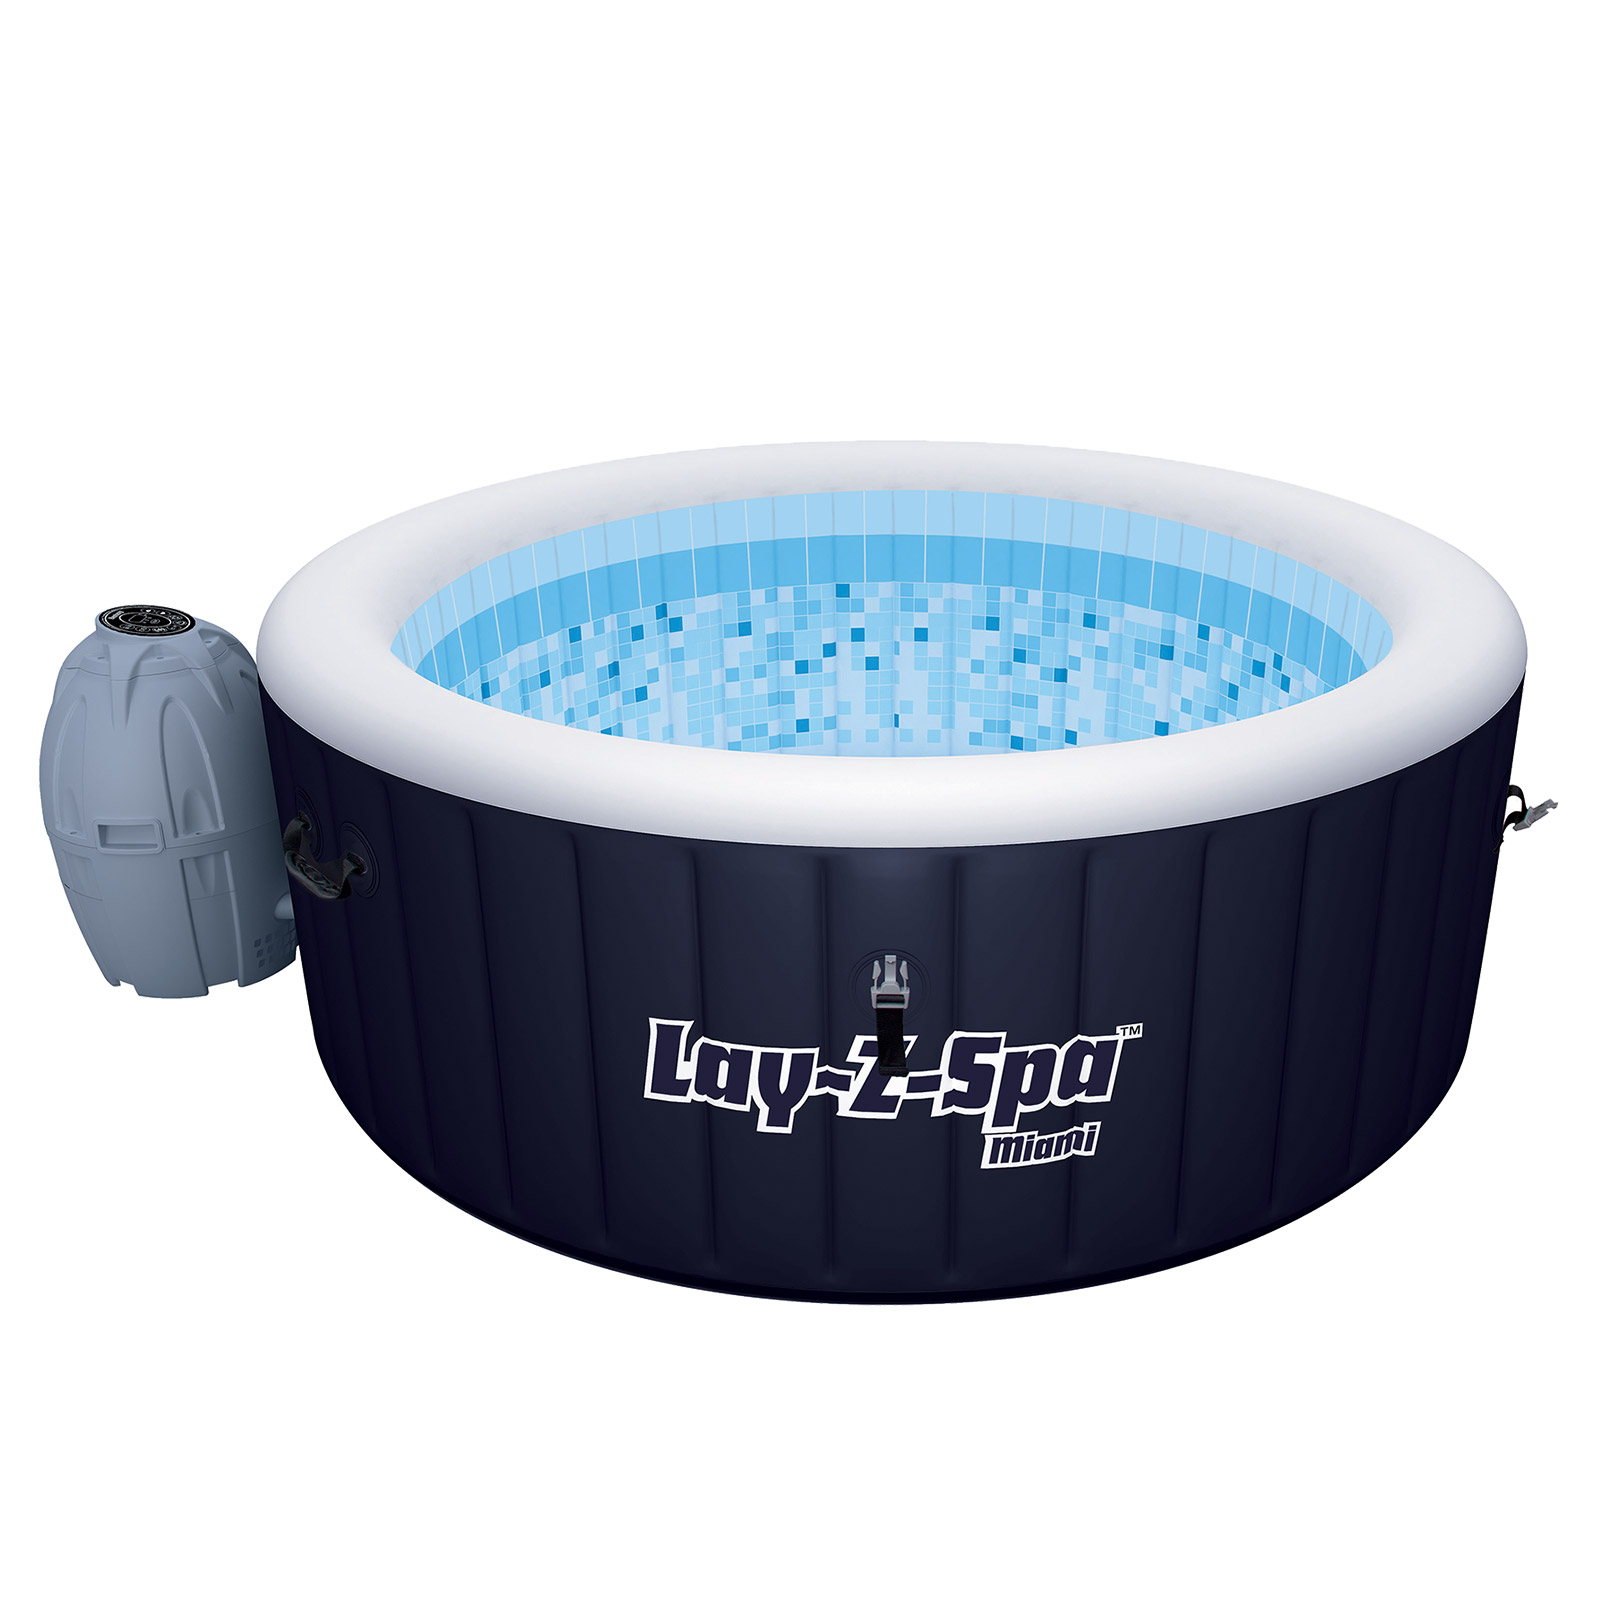 Bestway Lay-Z-Spa Inflatable Hot Tub Reviews - ProductReview.com.au